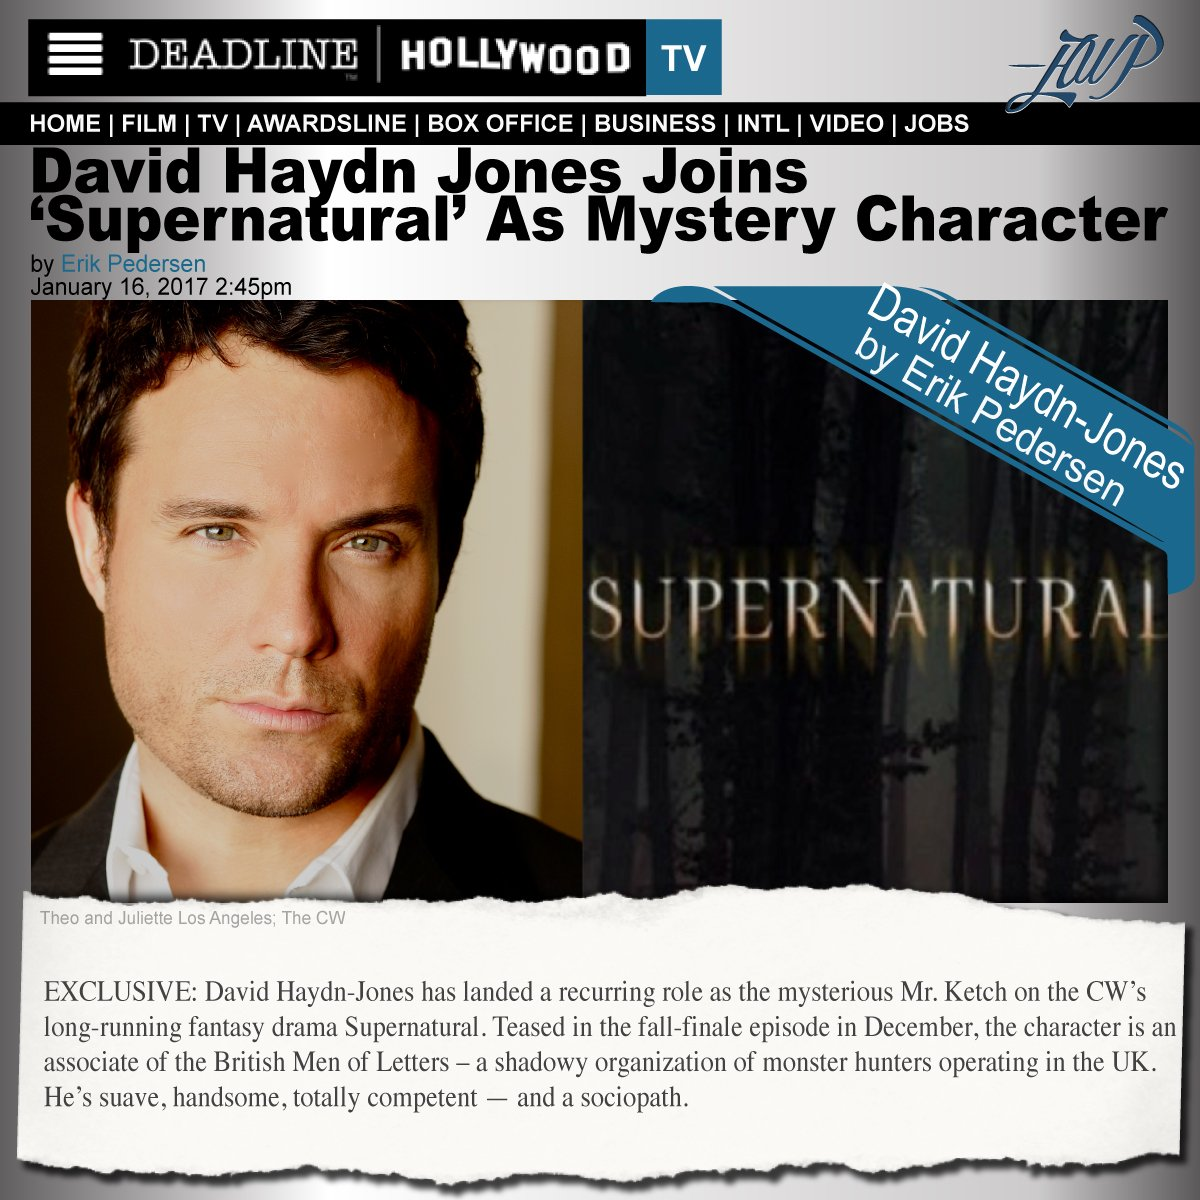 w/ #Supernatural's finale TOMORROW look back to @DEADLINE's Mysterious #MrKetch @DavidHaydnJones https://t.co/2rDRVtb9Nc What a story Arc! https://t.co/vSSdUXE2xW